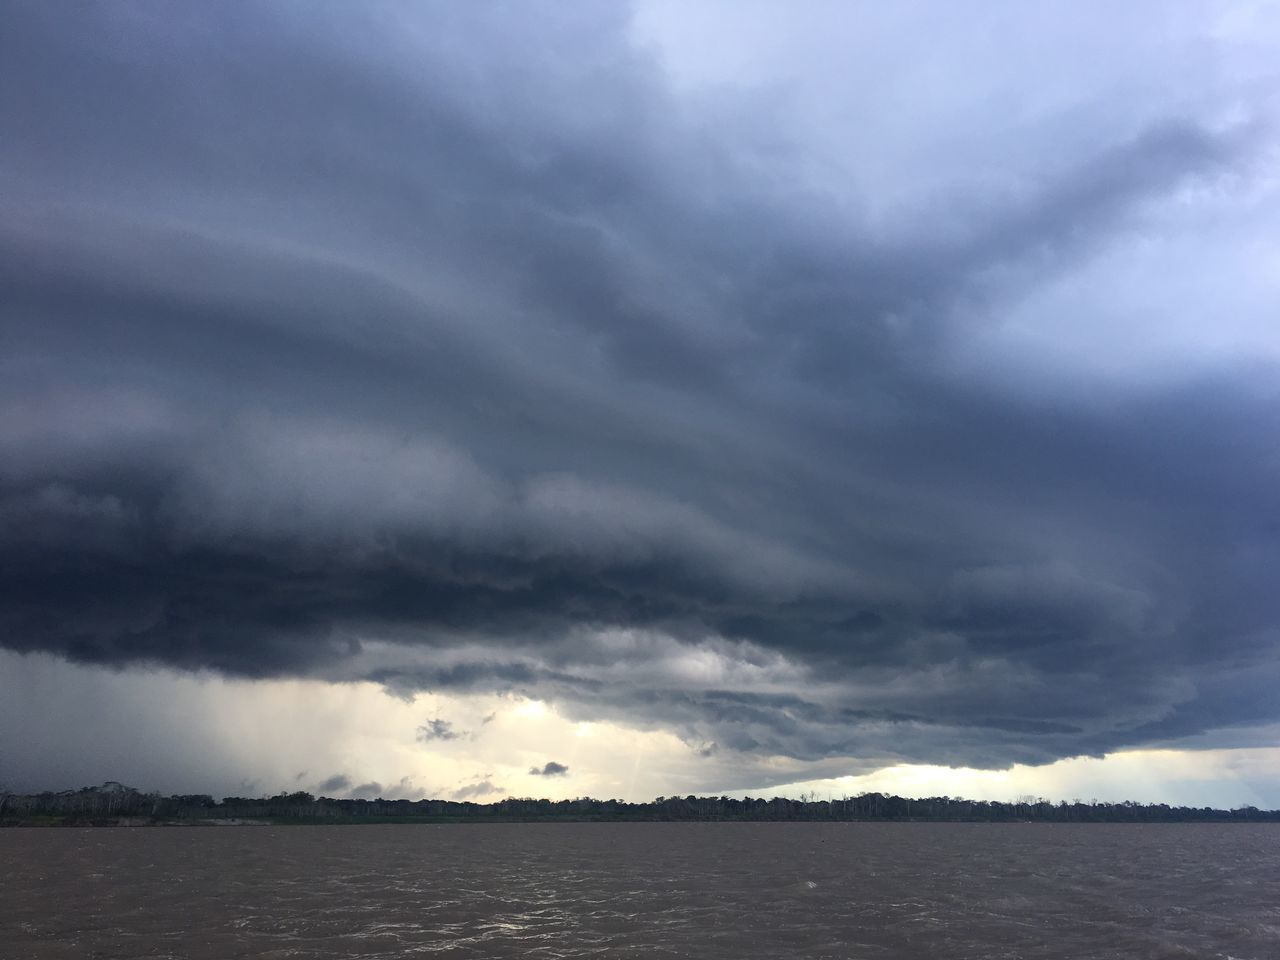 Storm over Amazonriver in Leticia Colombia Amazon River Storm Cloud Nature Rainforest Weather Cloud - Sky Outdoors Travel